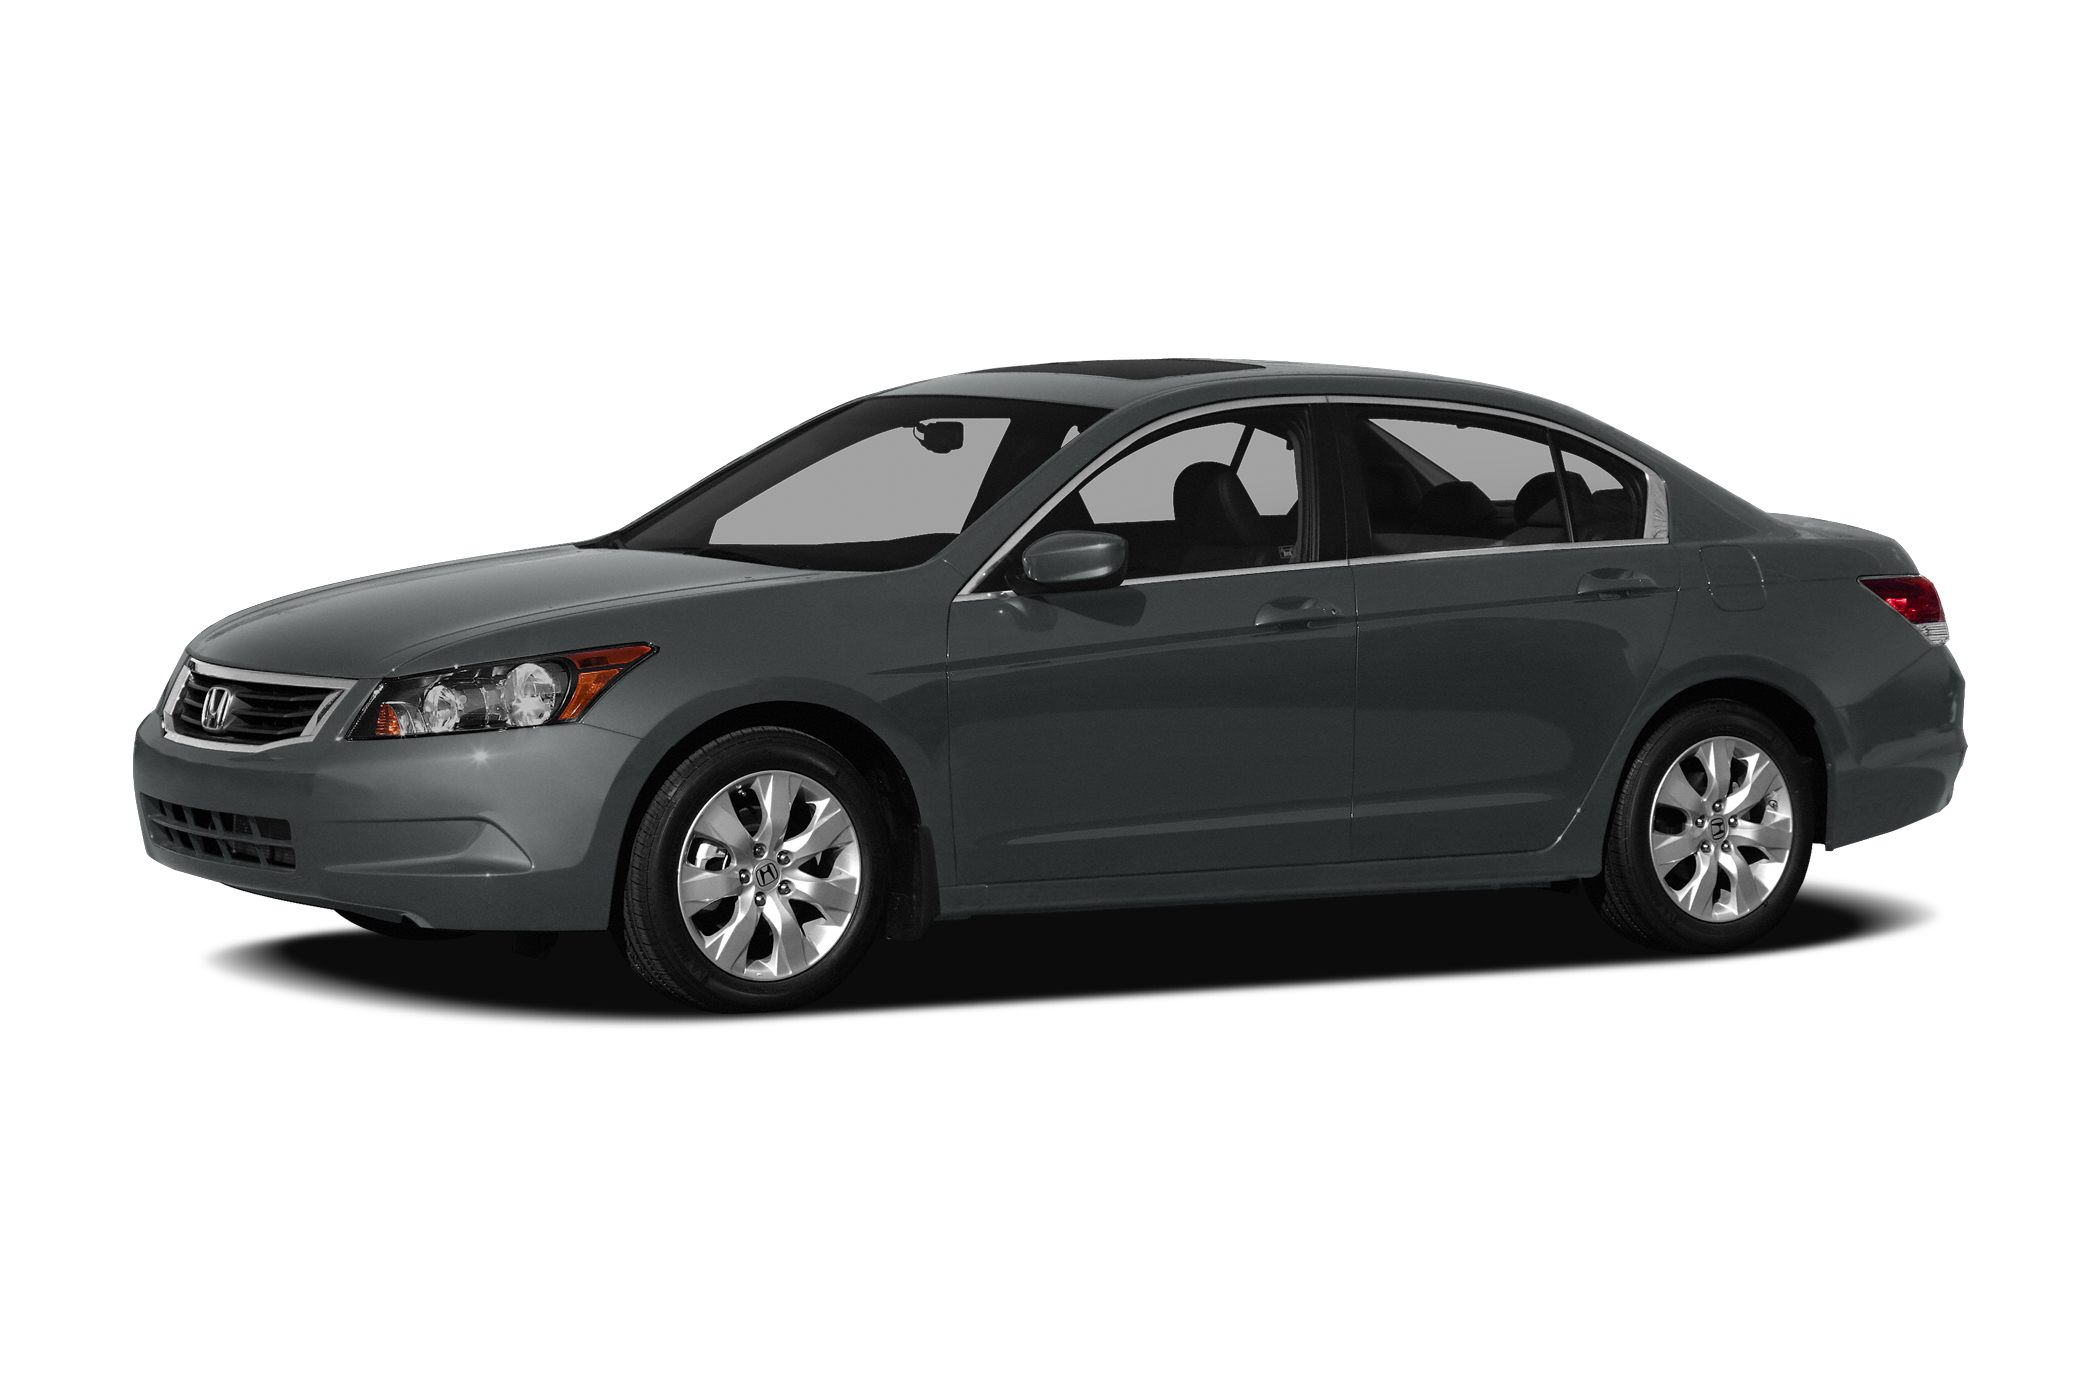 2009 Honda Accord 24 LX REDUCED FROM 13877 EPA 31 MPG Hwy22 MPG City CARFAX 1-Owner GREAT